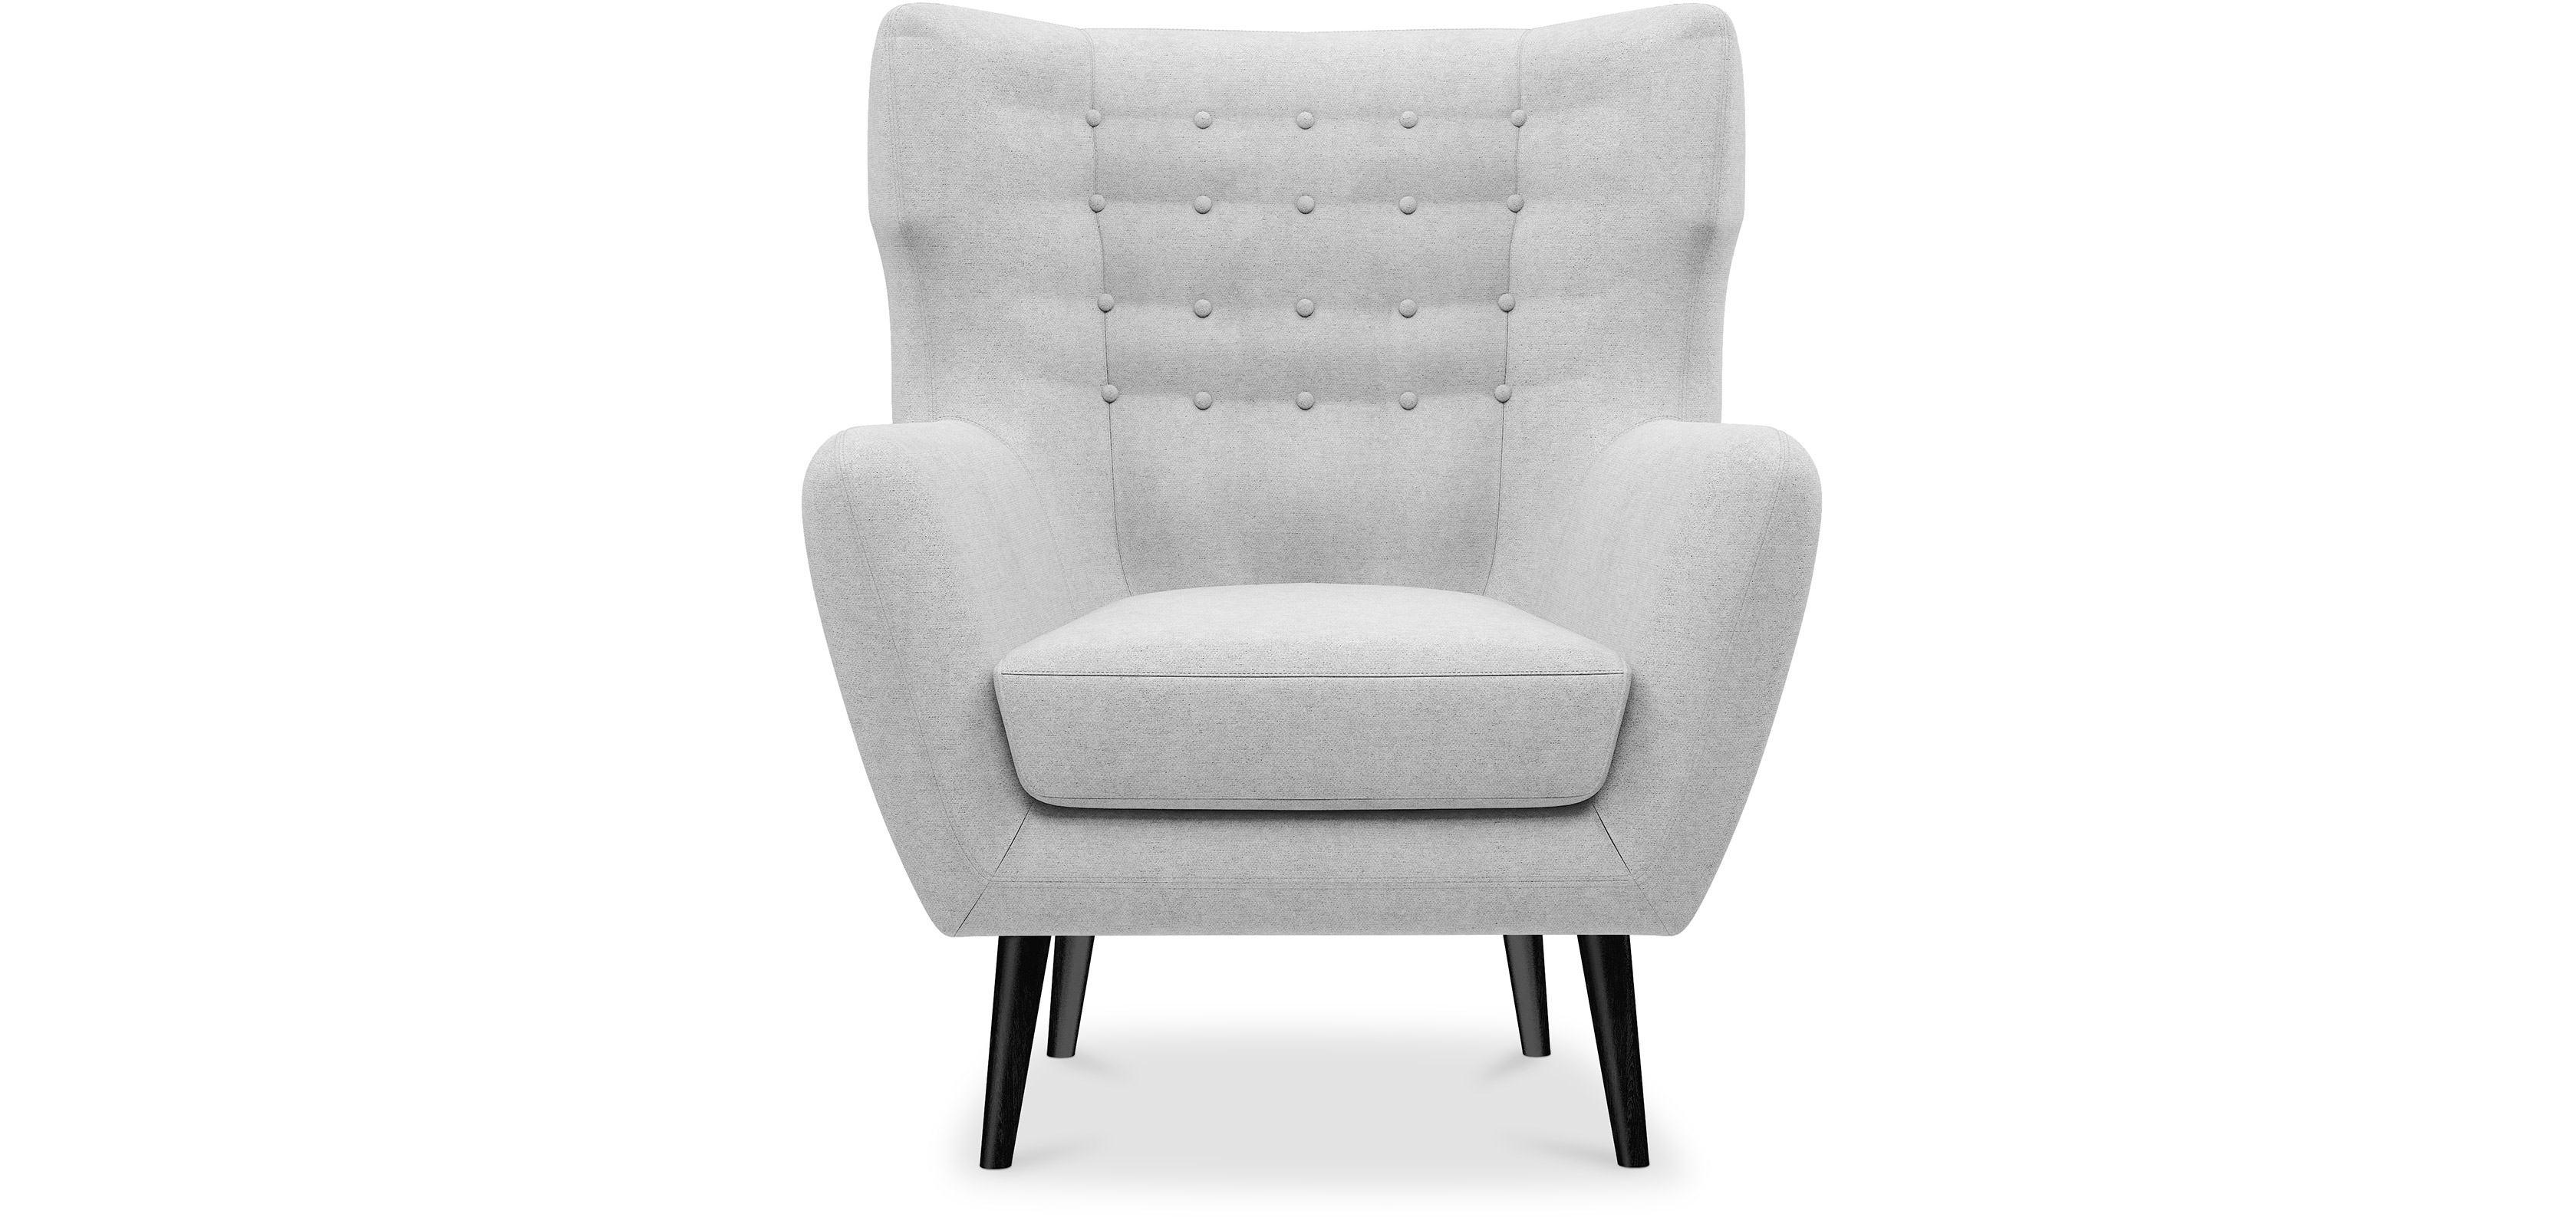 Fauteuil style scandinave Thor pas cher